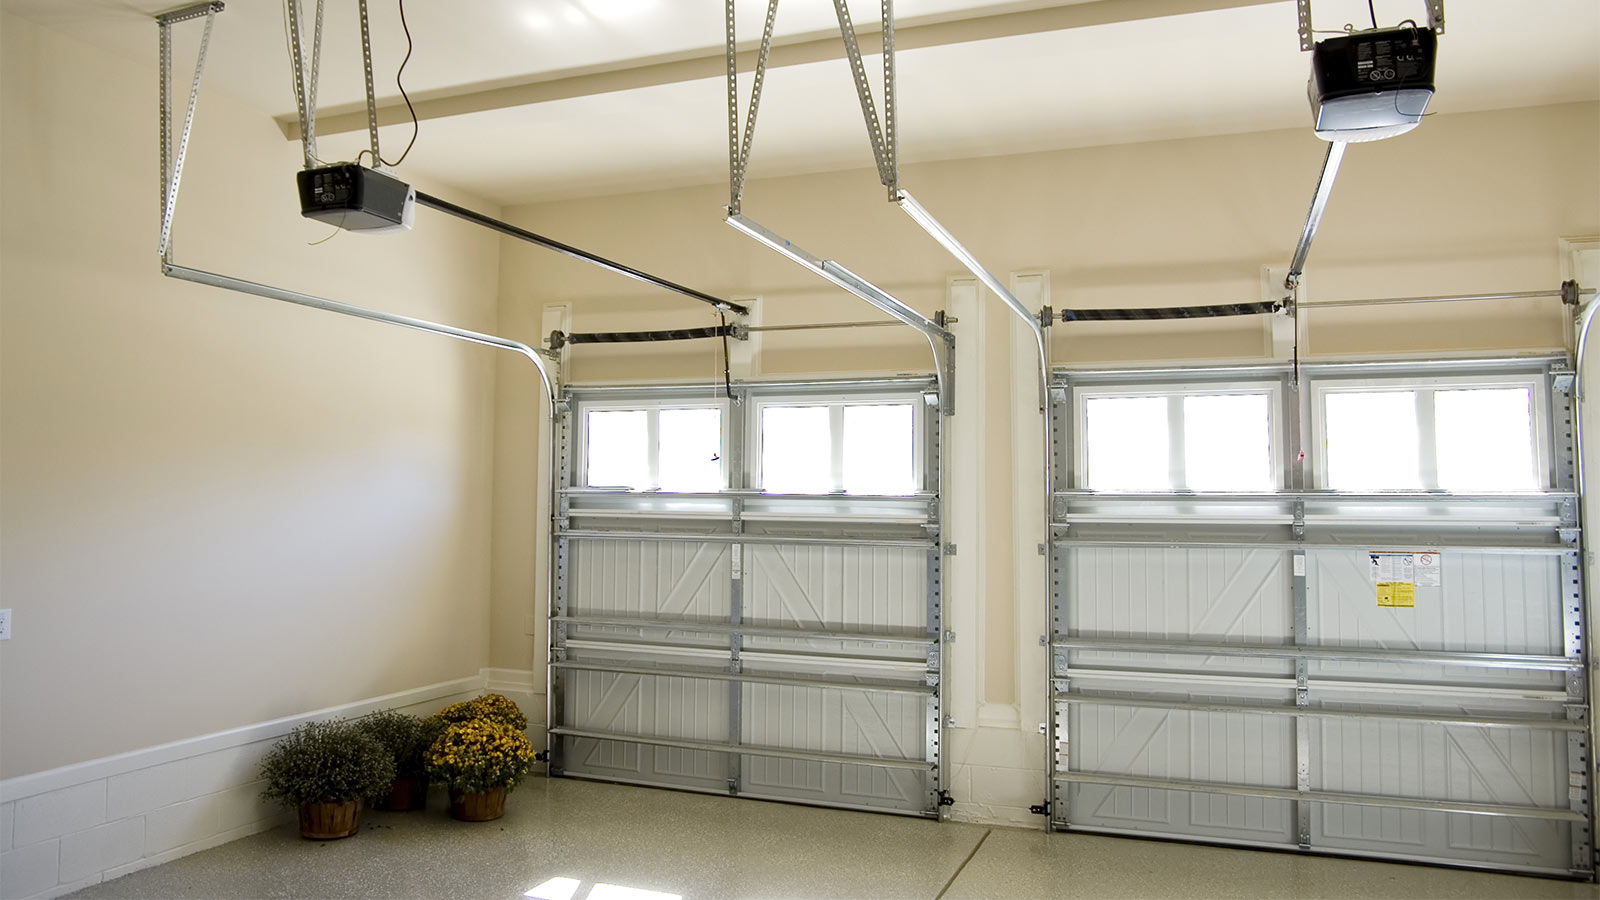 Sectional Garage Doors from Sectional Garage Doors Watford suppliers.